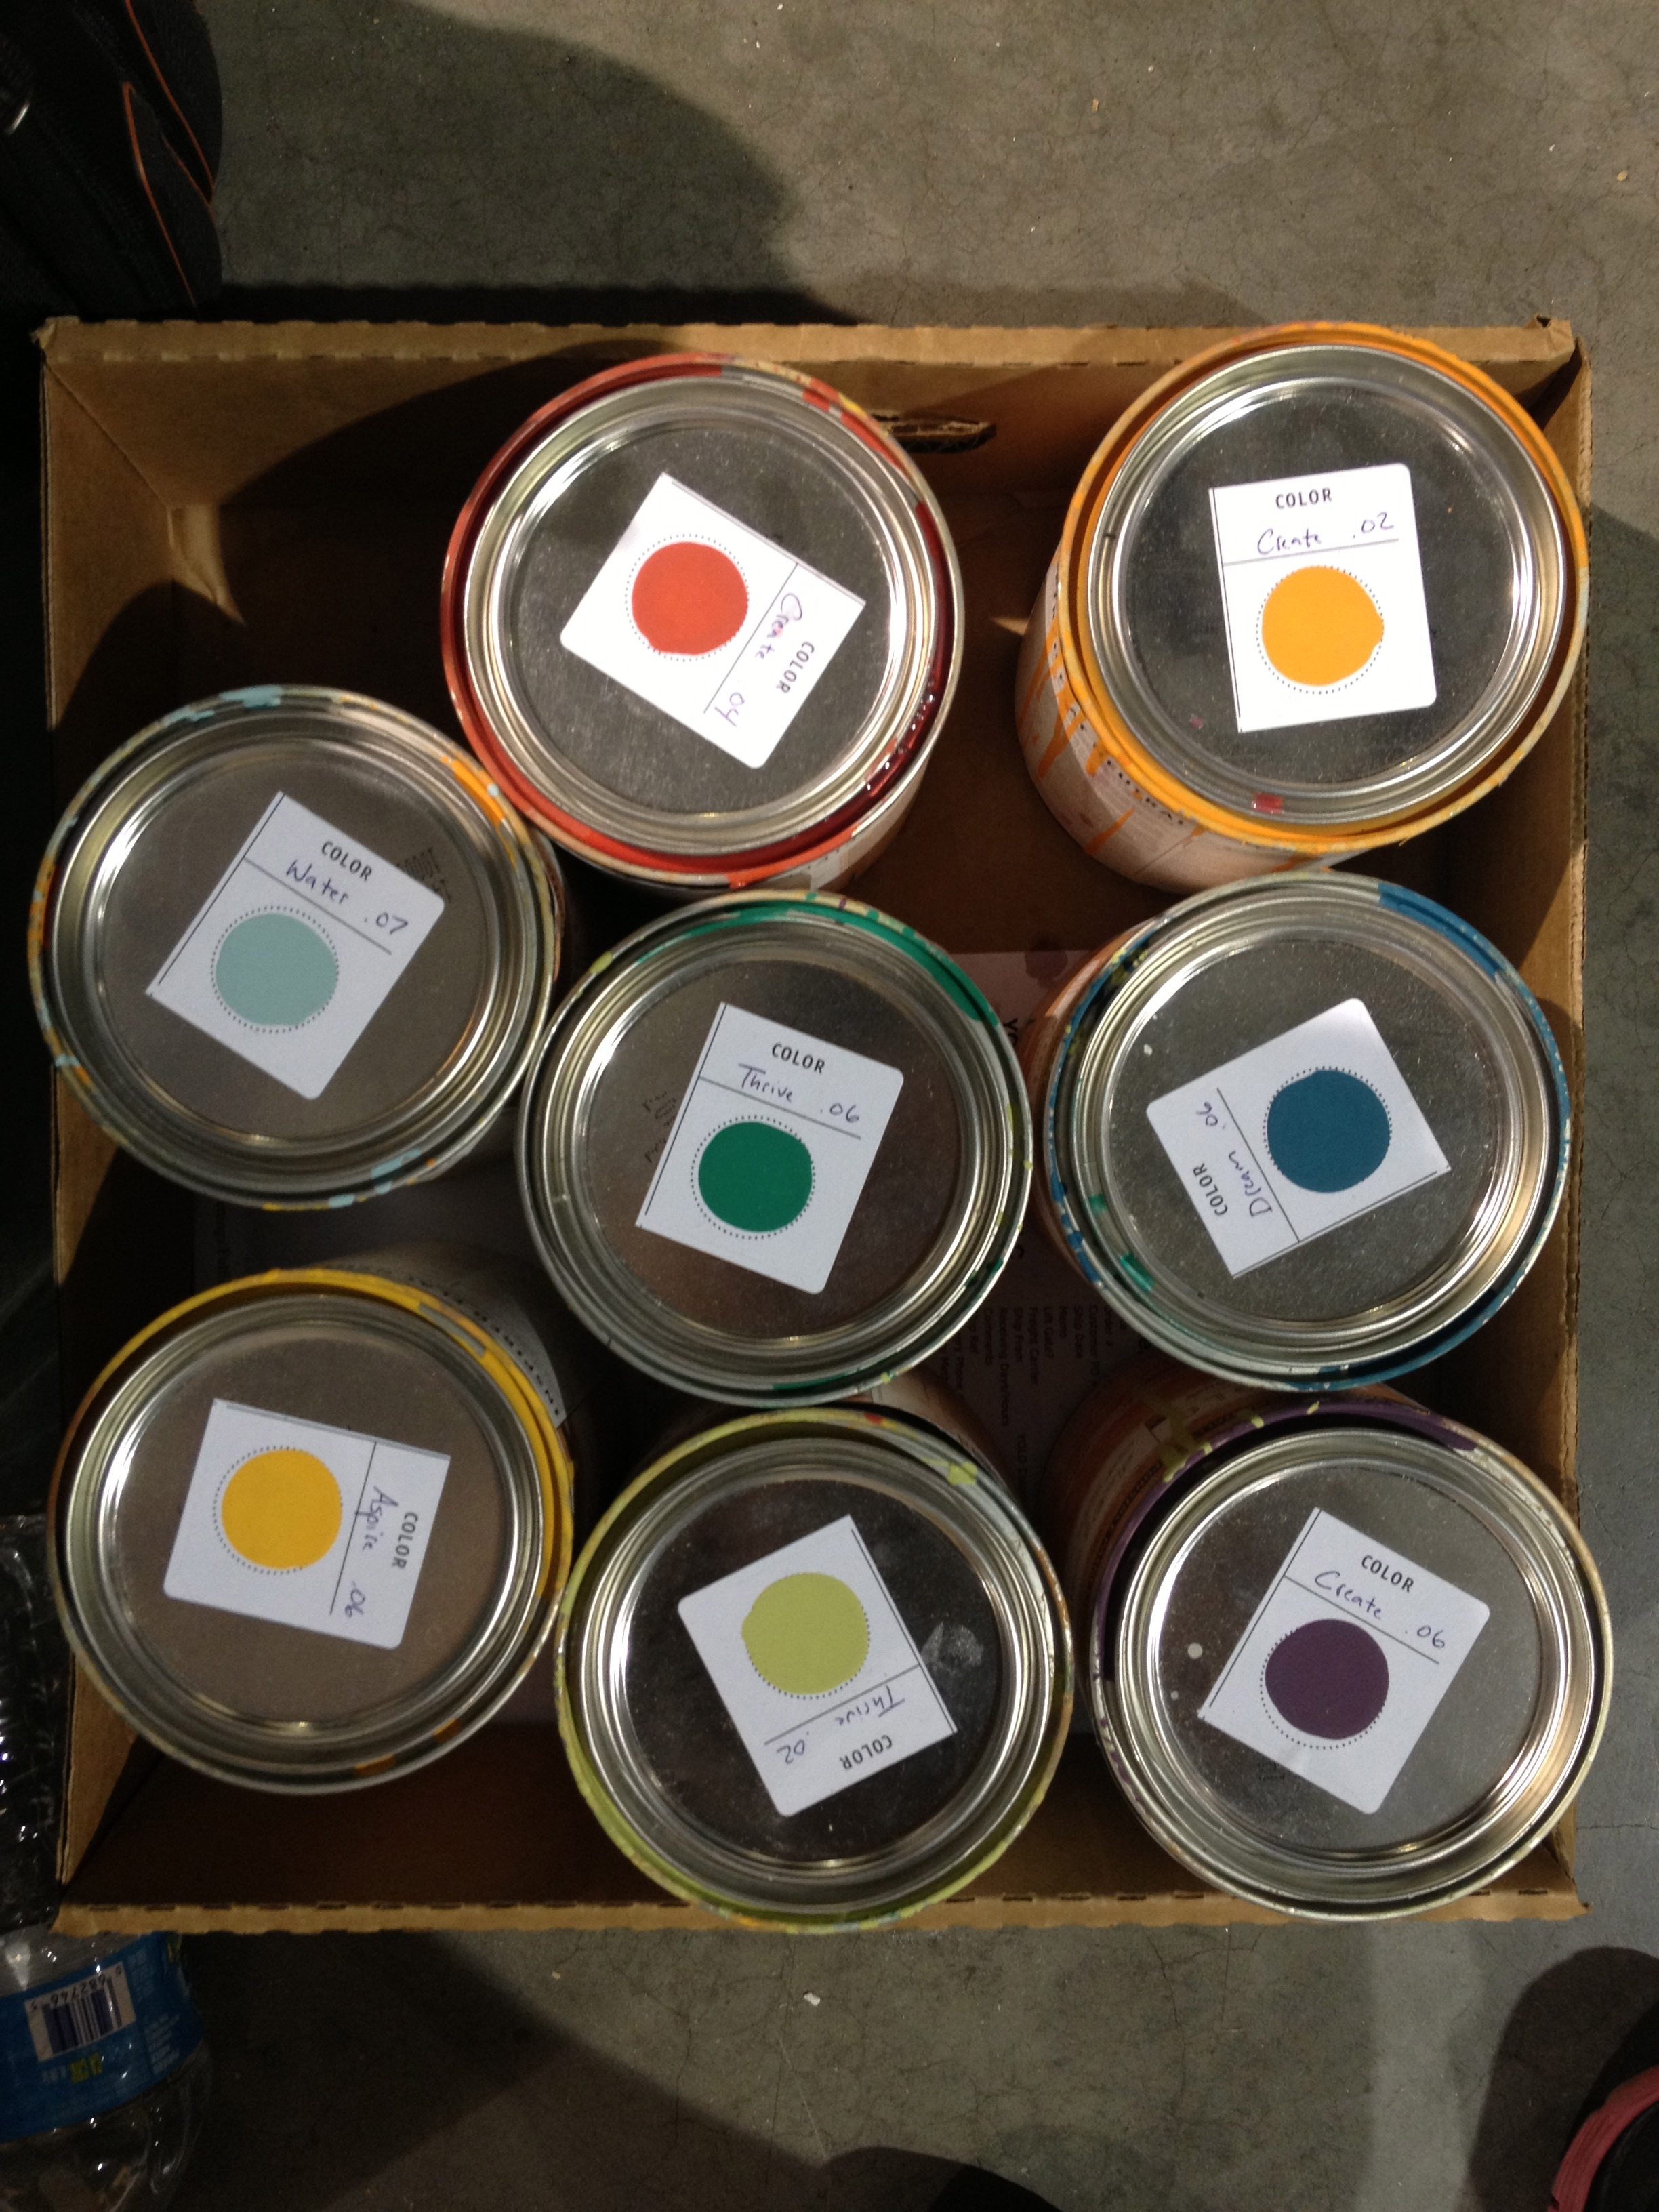 yolo colorhouse paint, eco-friendly paint, paint made in the usa